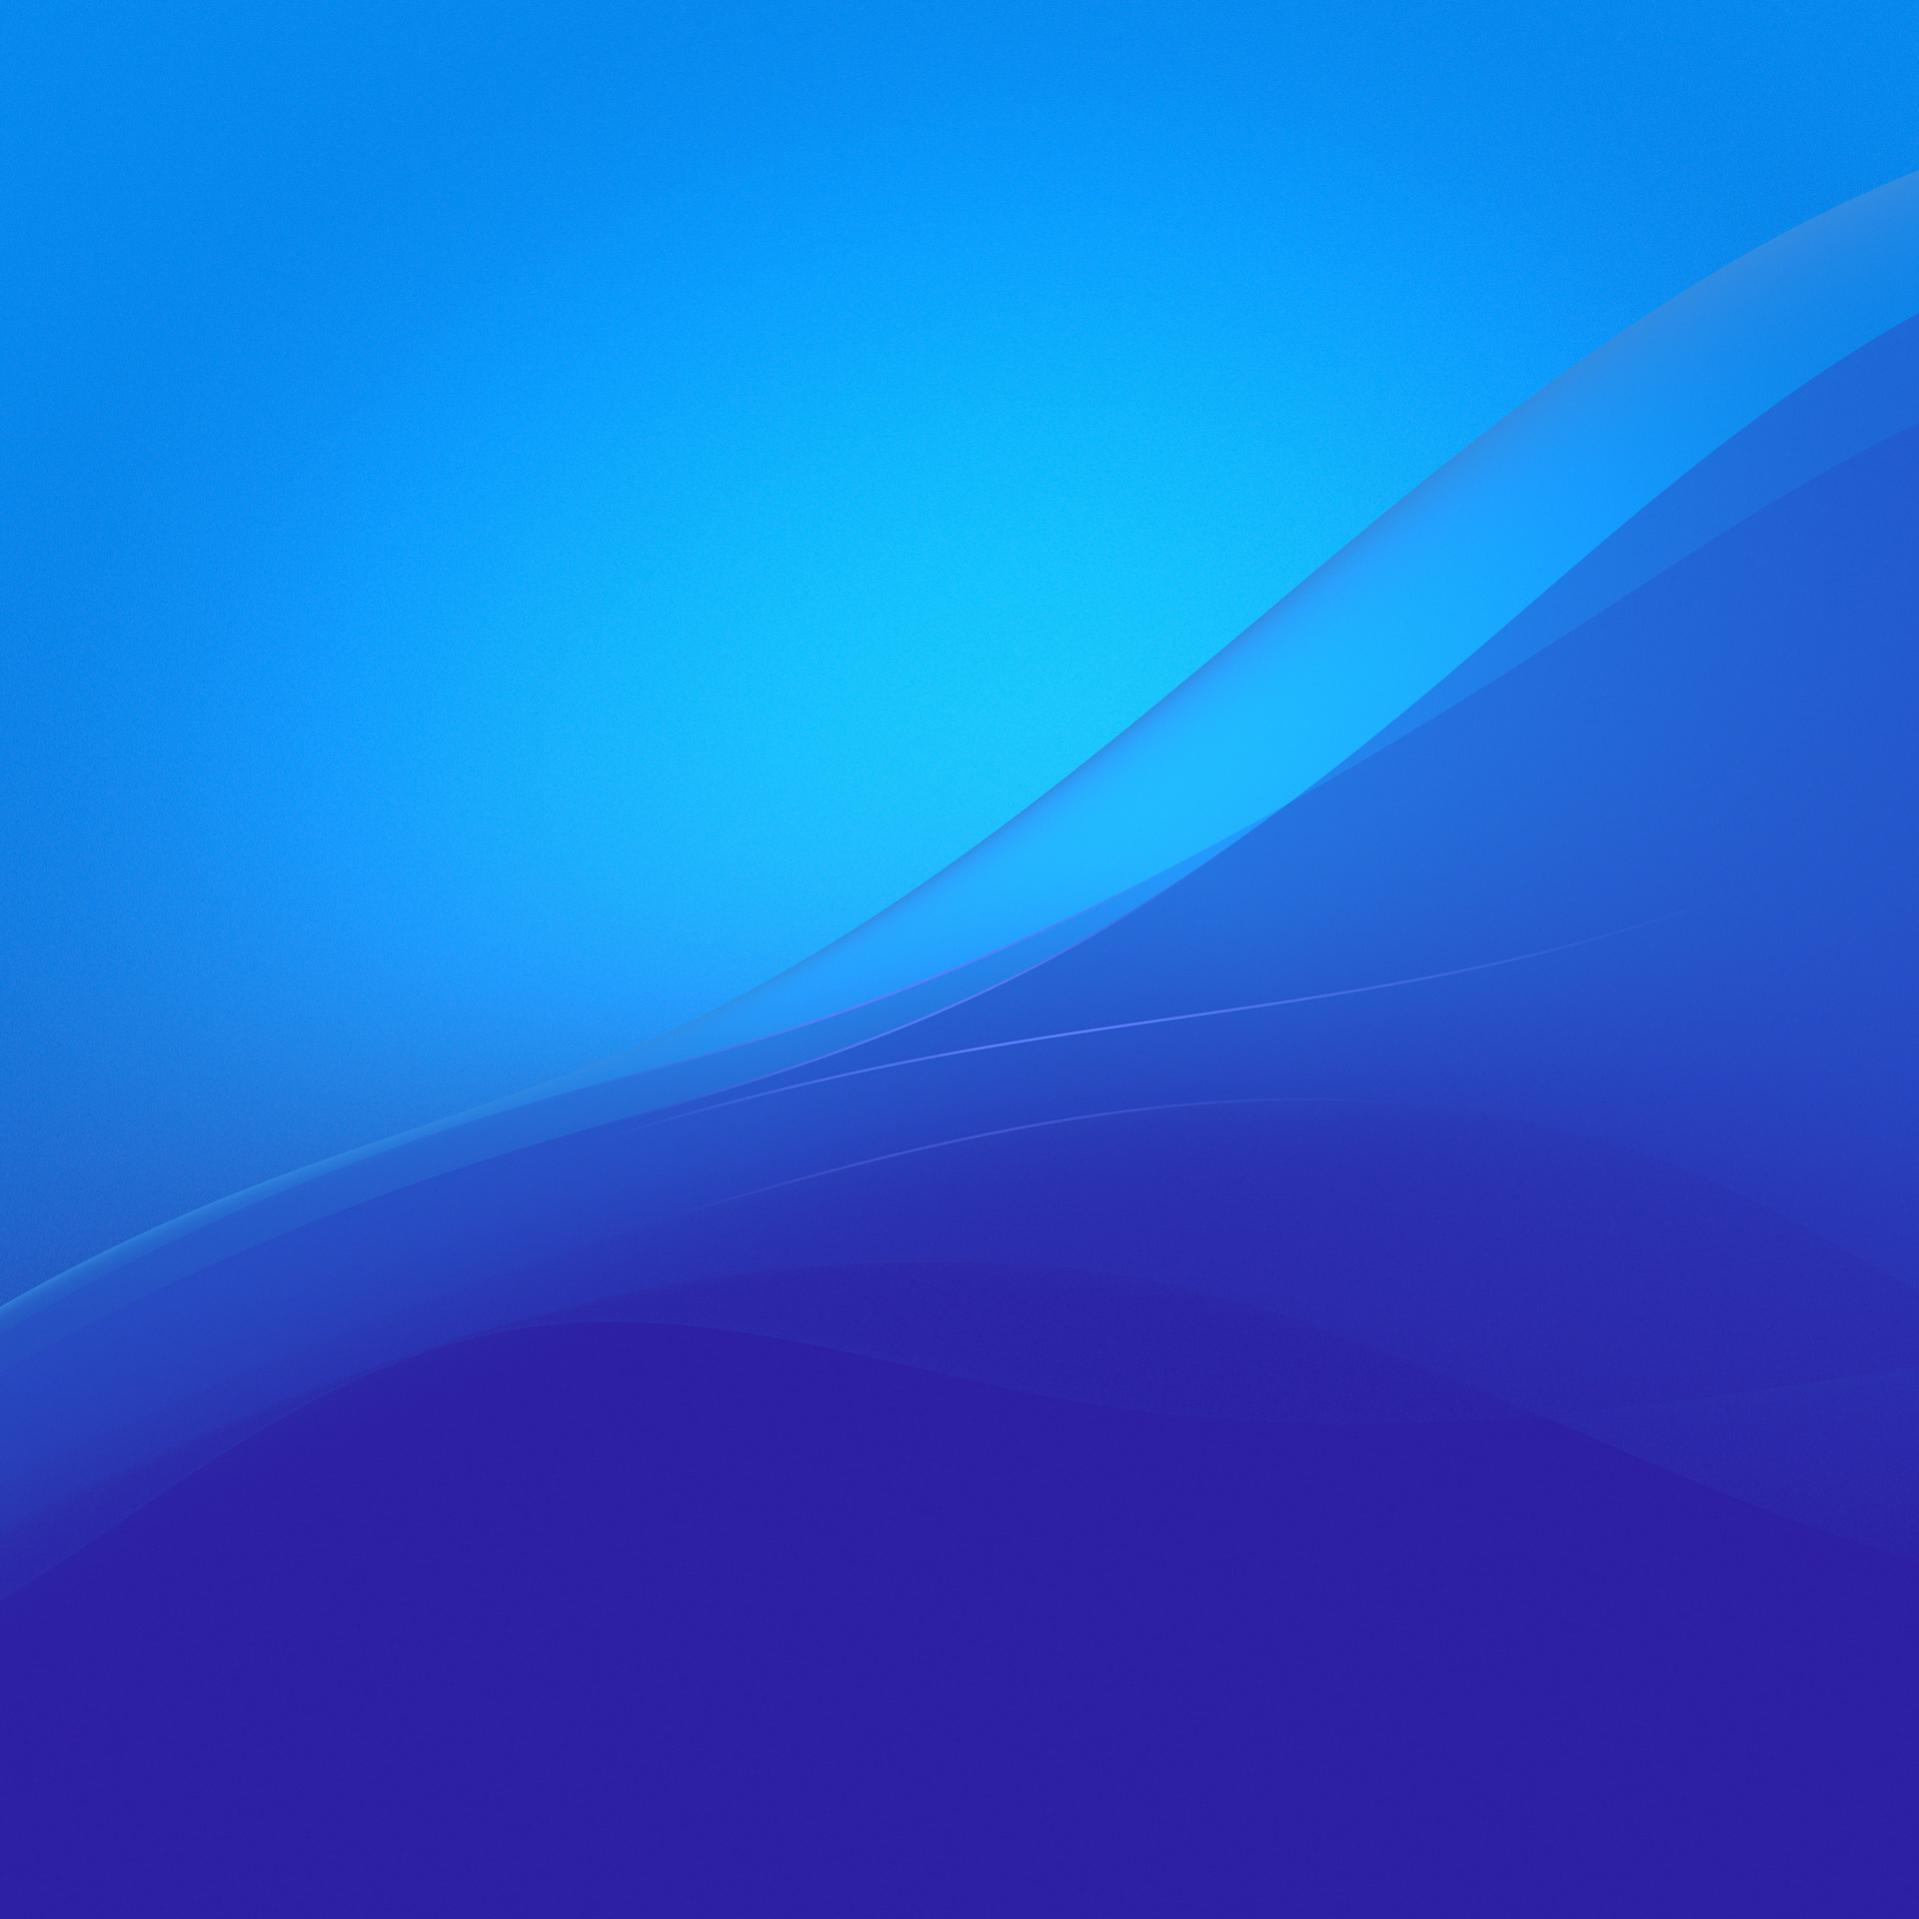 official Xperia Wallpaper from Lollipop firmware in Blue Color